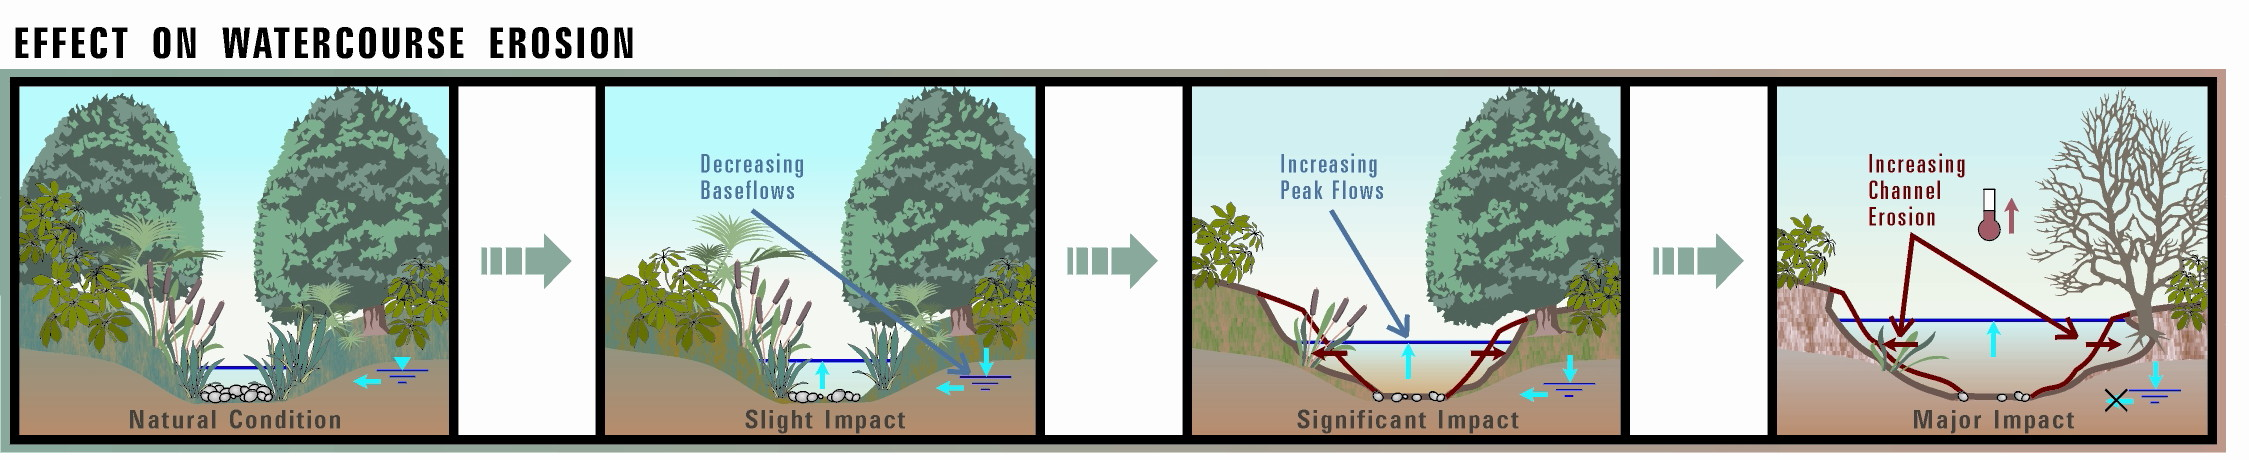 Altering the Water Balance Distribution has Wet-Weather Consequences: Increasing Surface volume + Longer Flow Duration = More Stream Erosion + Loss of Stream Habitat